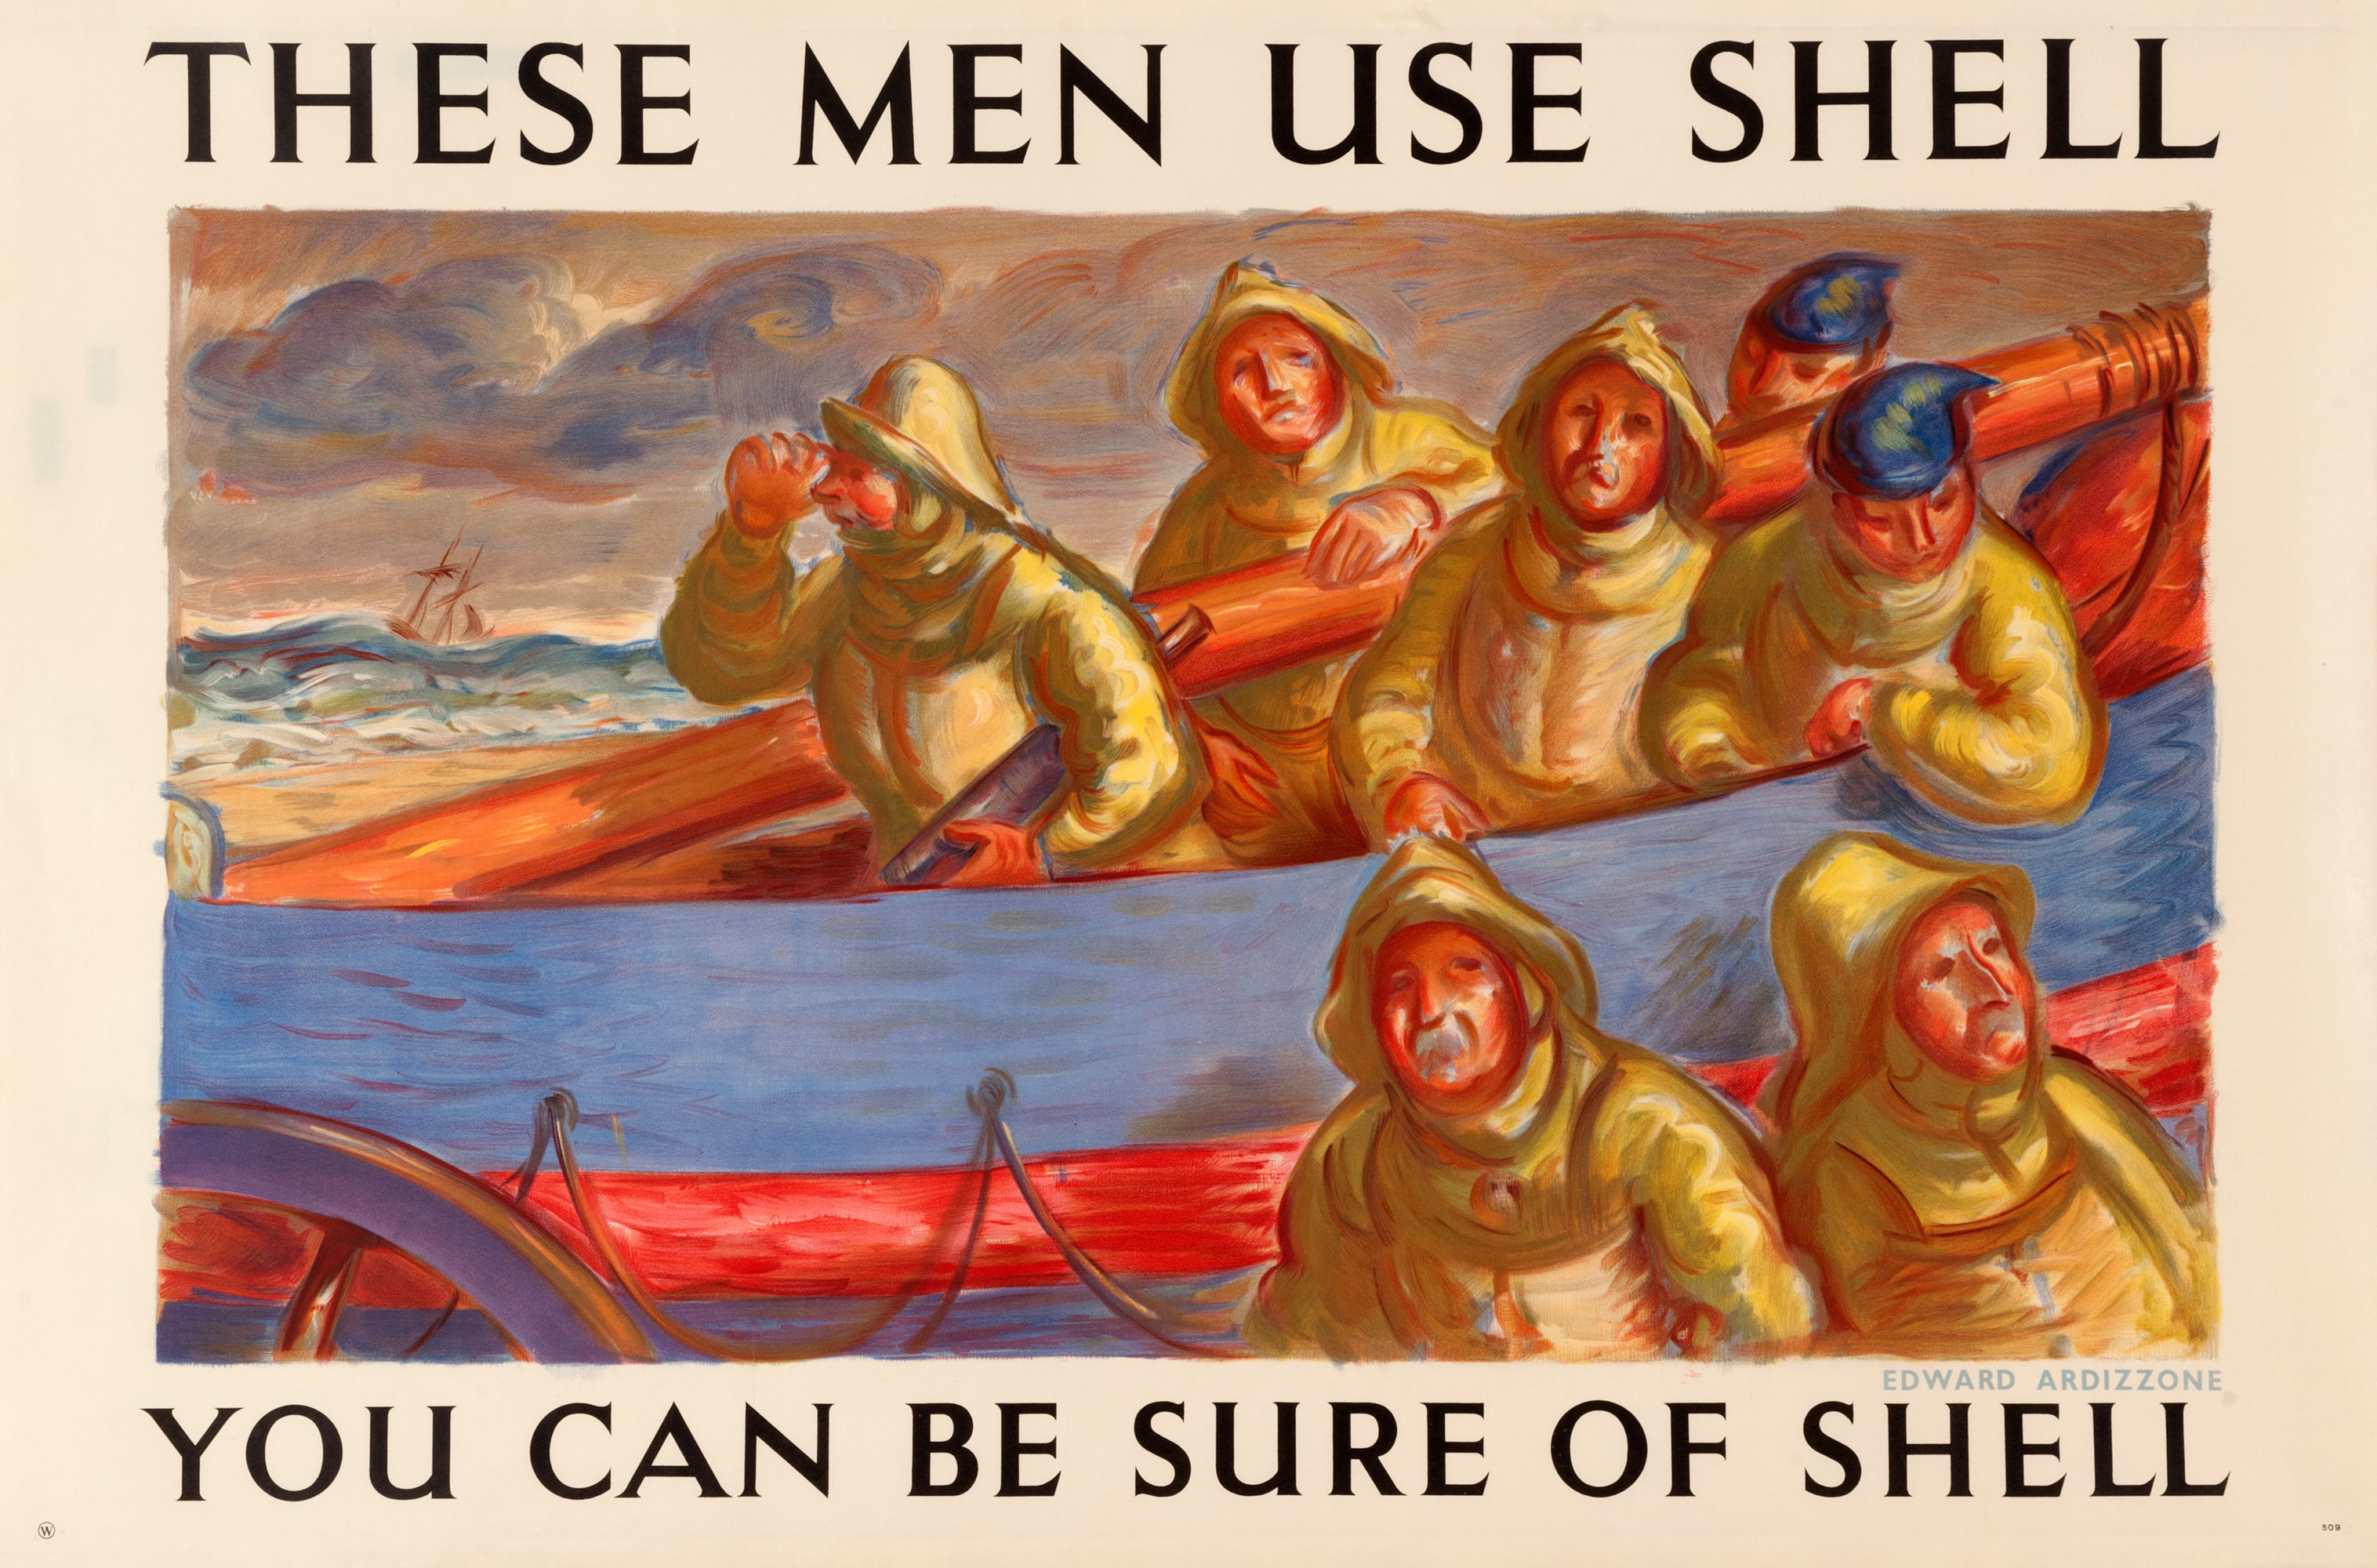 Shell poster number 509, Lifeboatmen use Shell by Edward Ardizzone. Painting of seven lifeboatmen at sea.